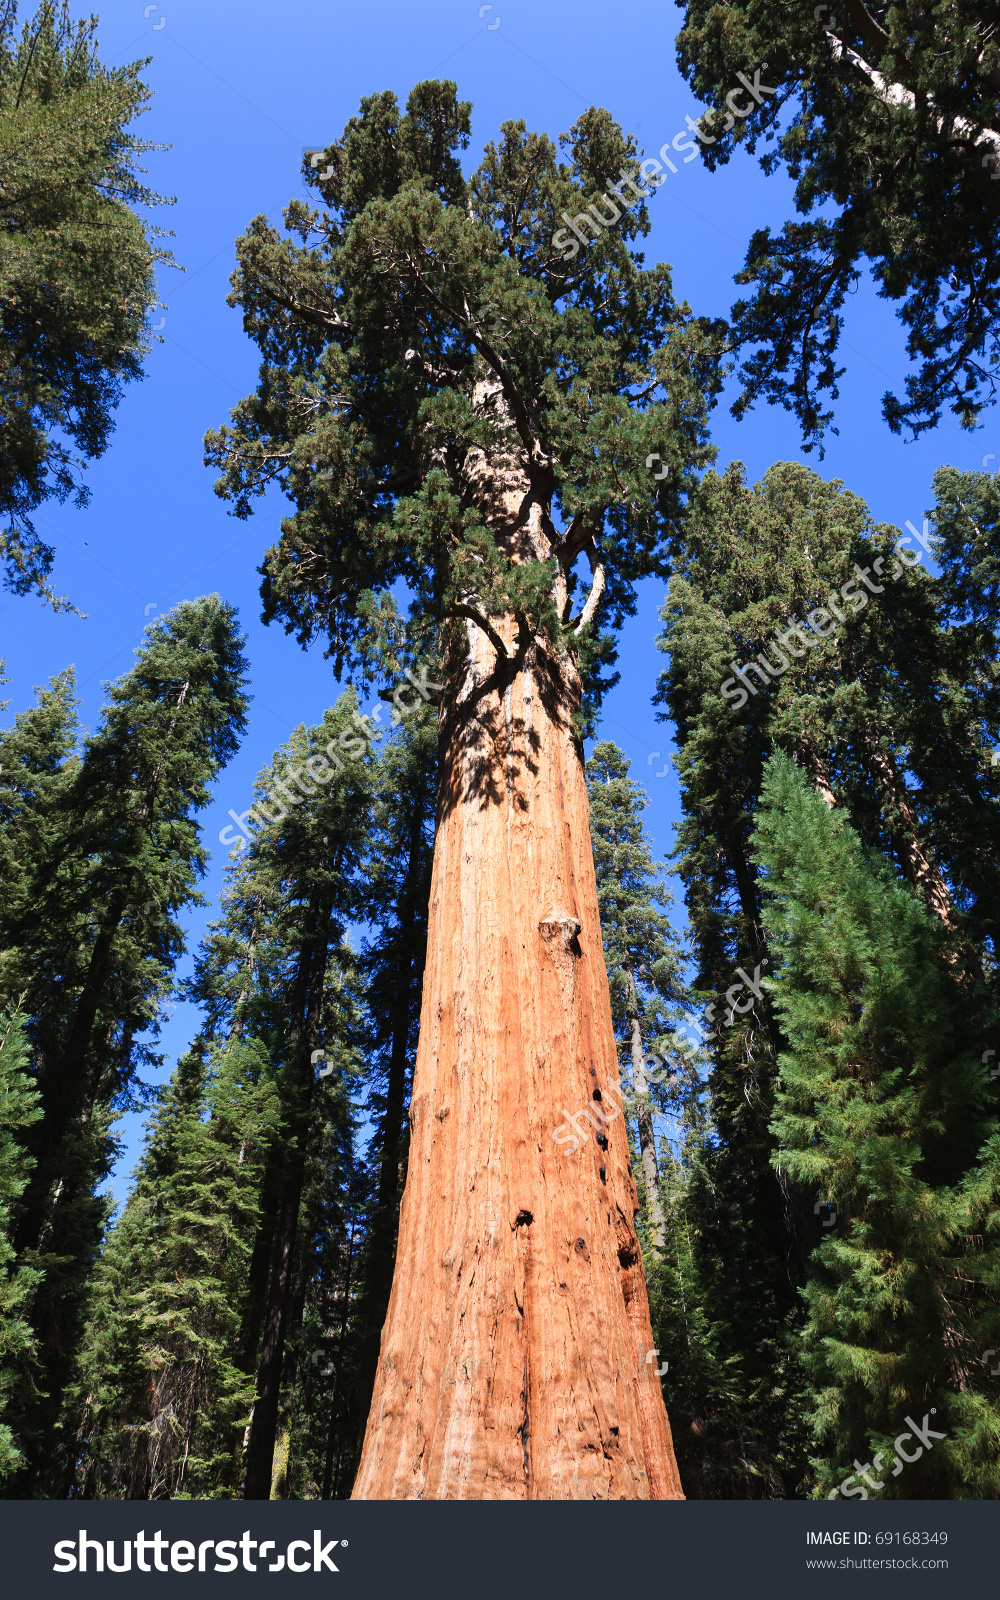 Sequoia National Park clipart #6, Download drawings